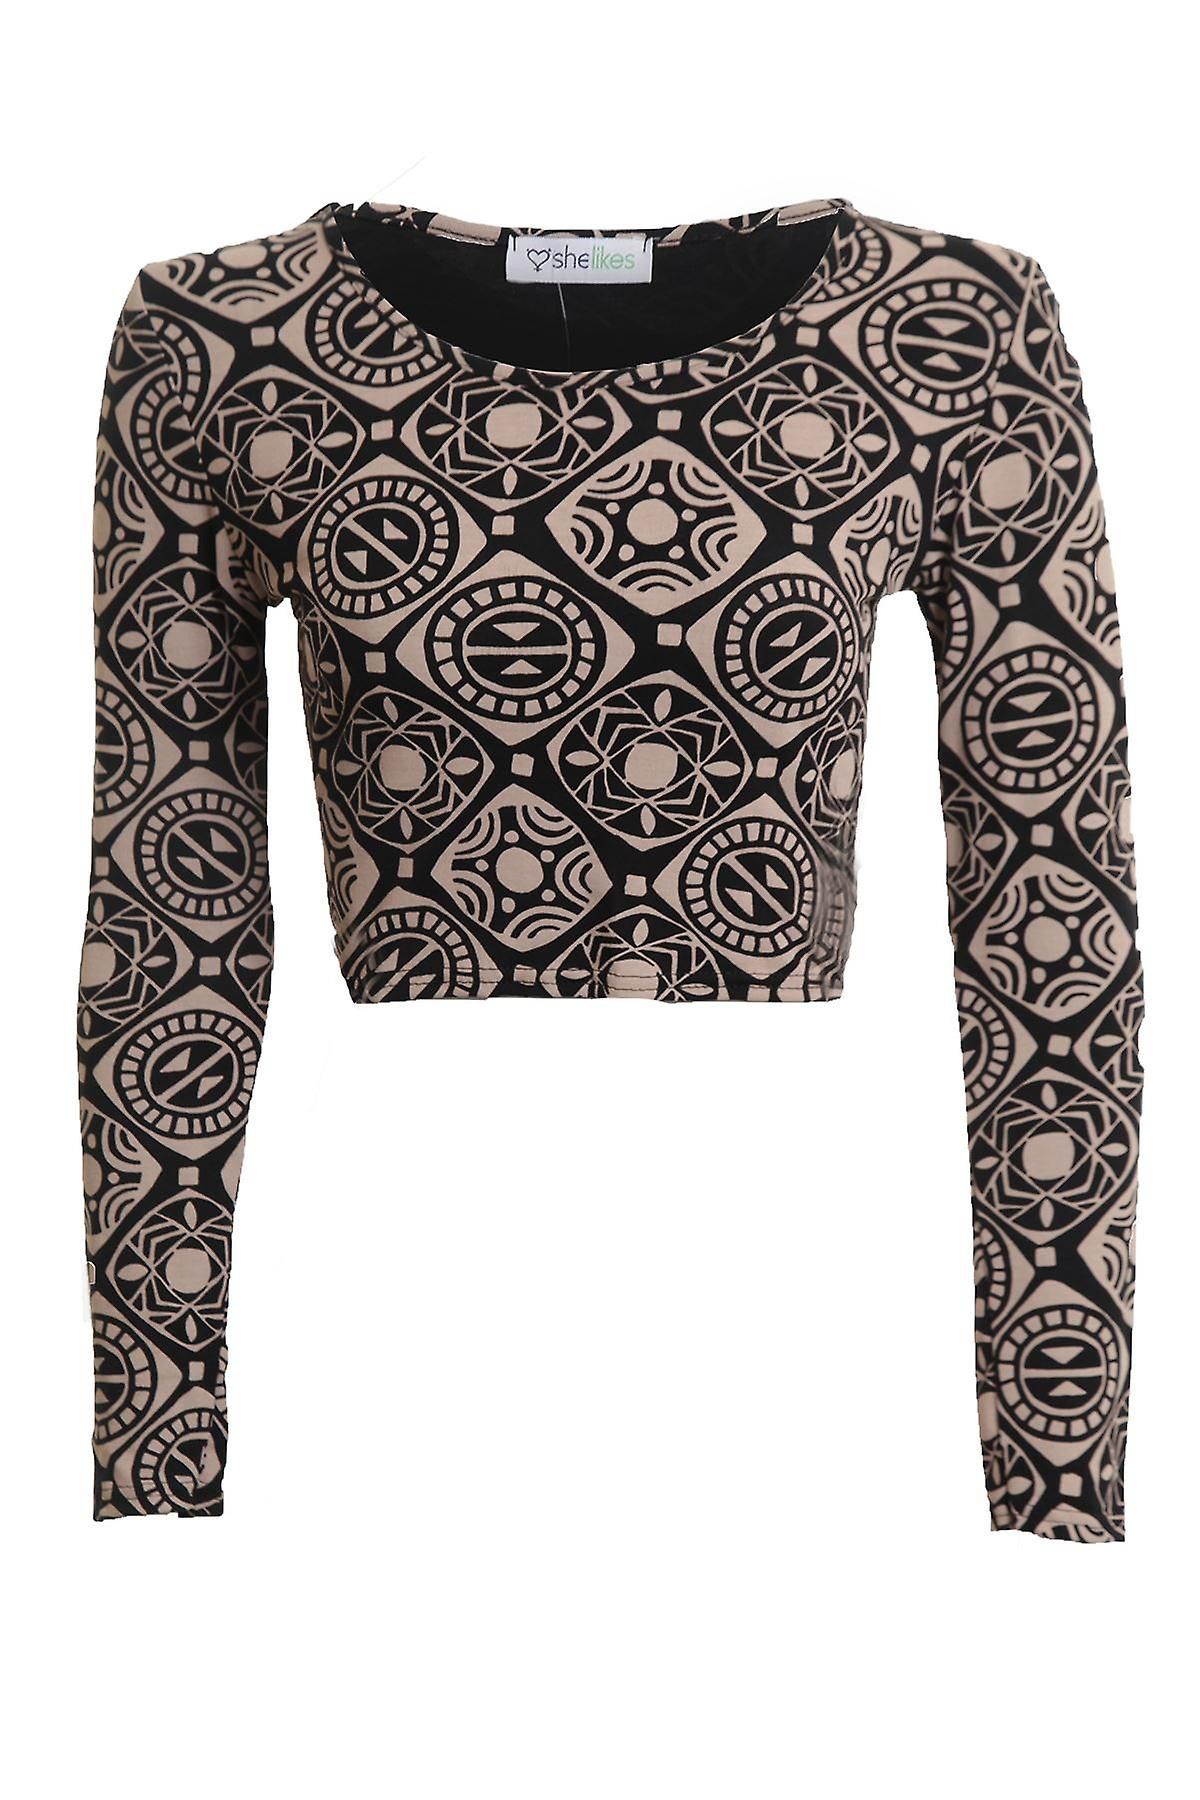 New Ladies Long Sleeve Funky Galaxy Paisley Print Women's Crop Top